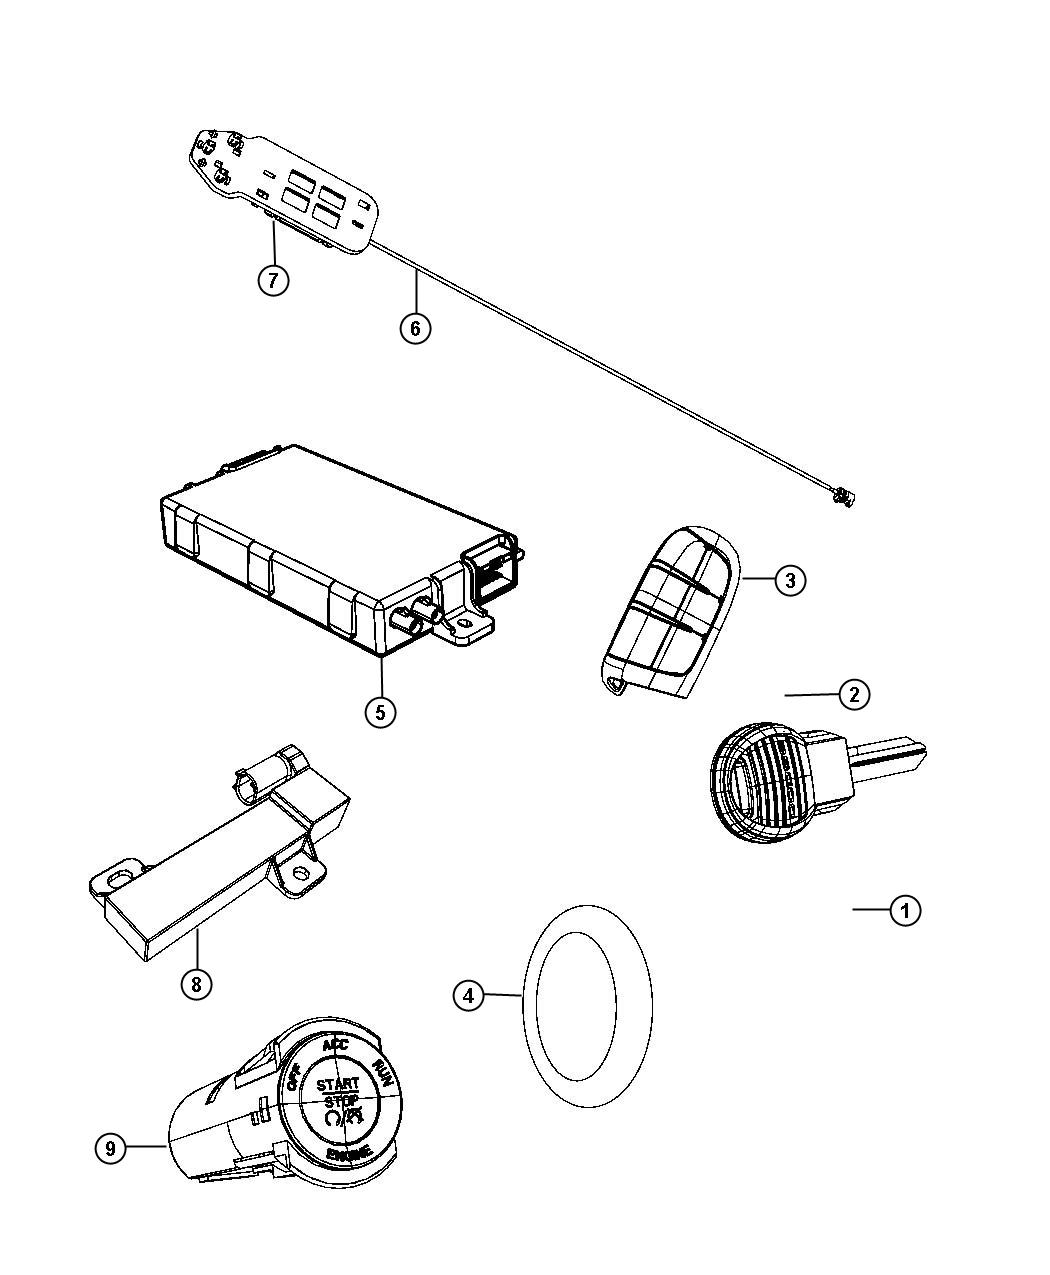 Chrysler 300 Module, switch. Ignition, ignition switch